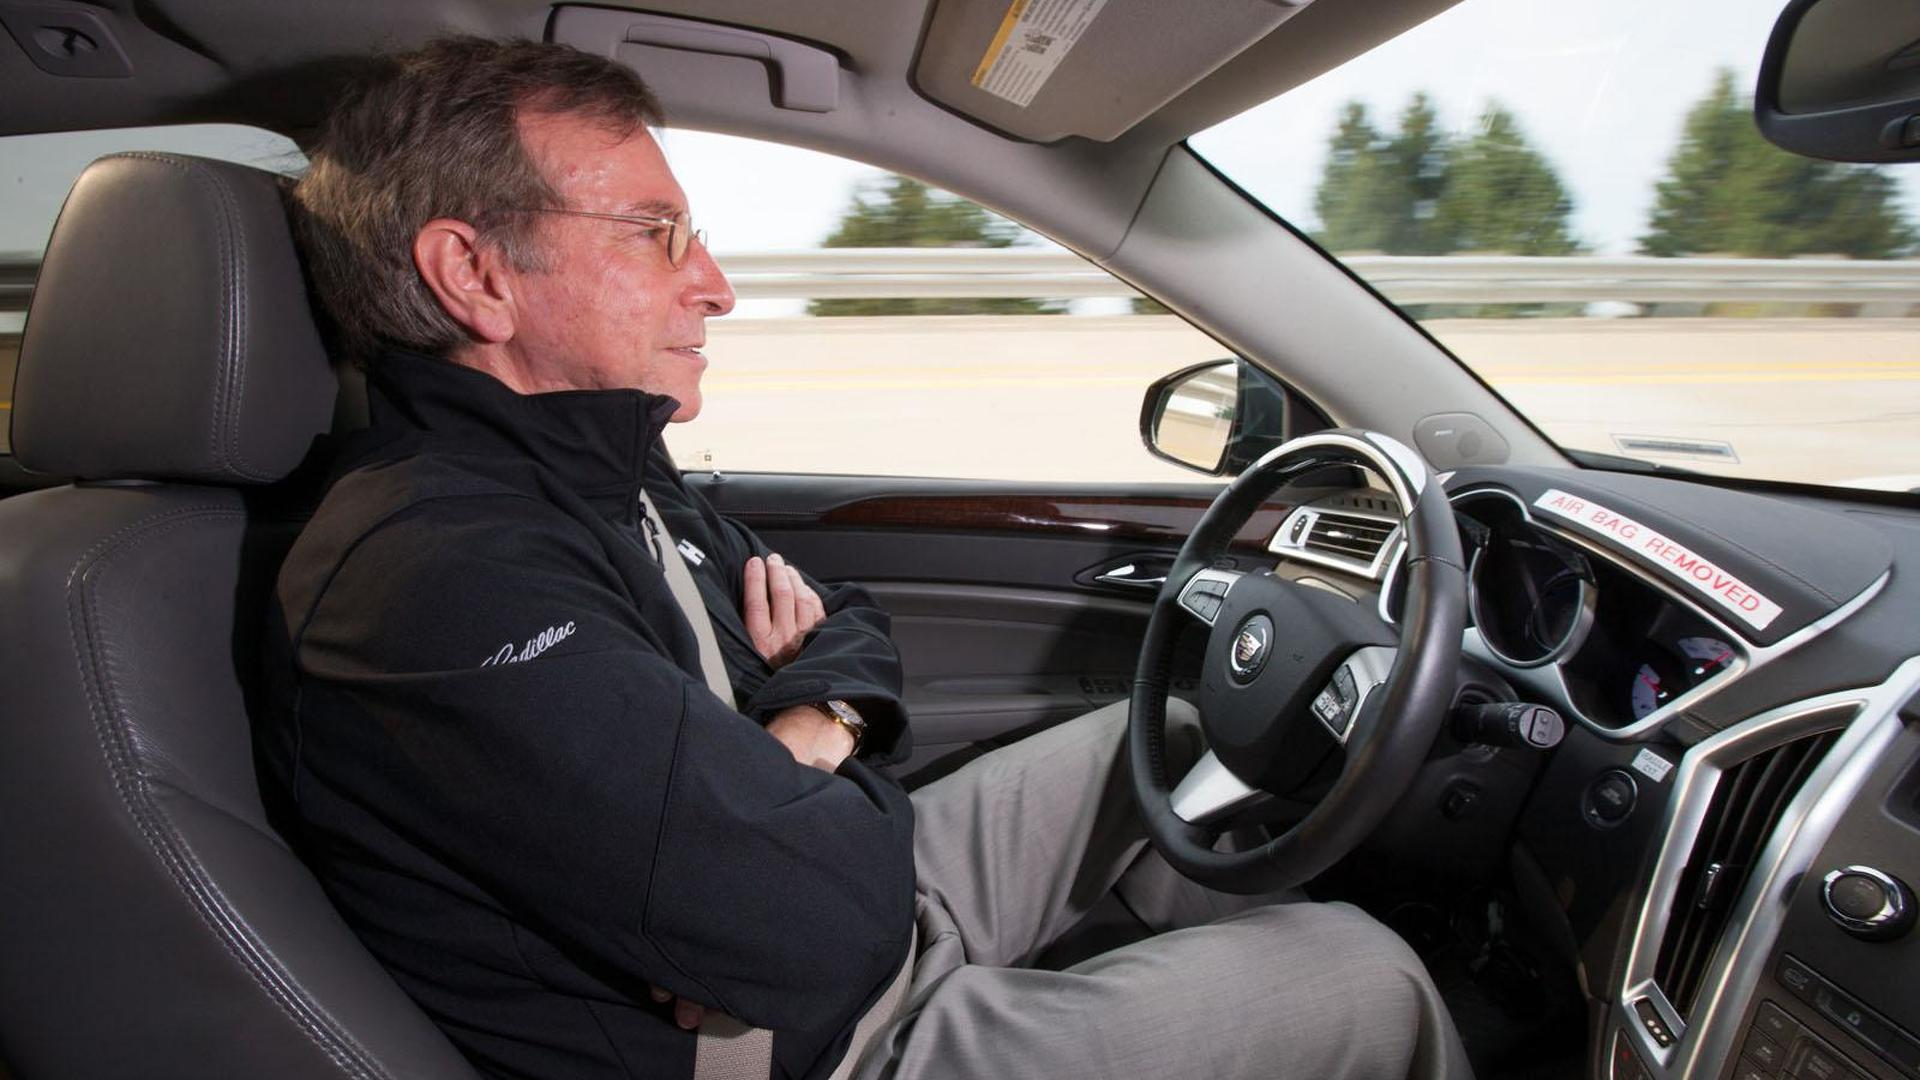 Auto industry will spend $25 billion on autonomous tech by 2020